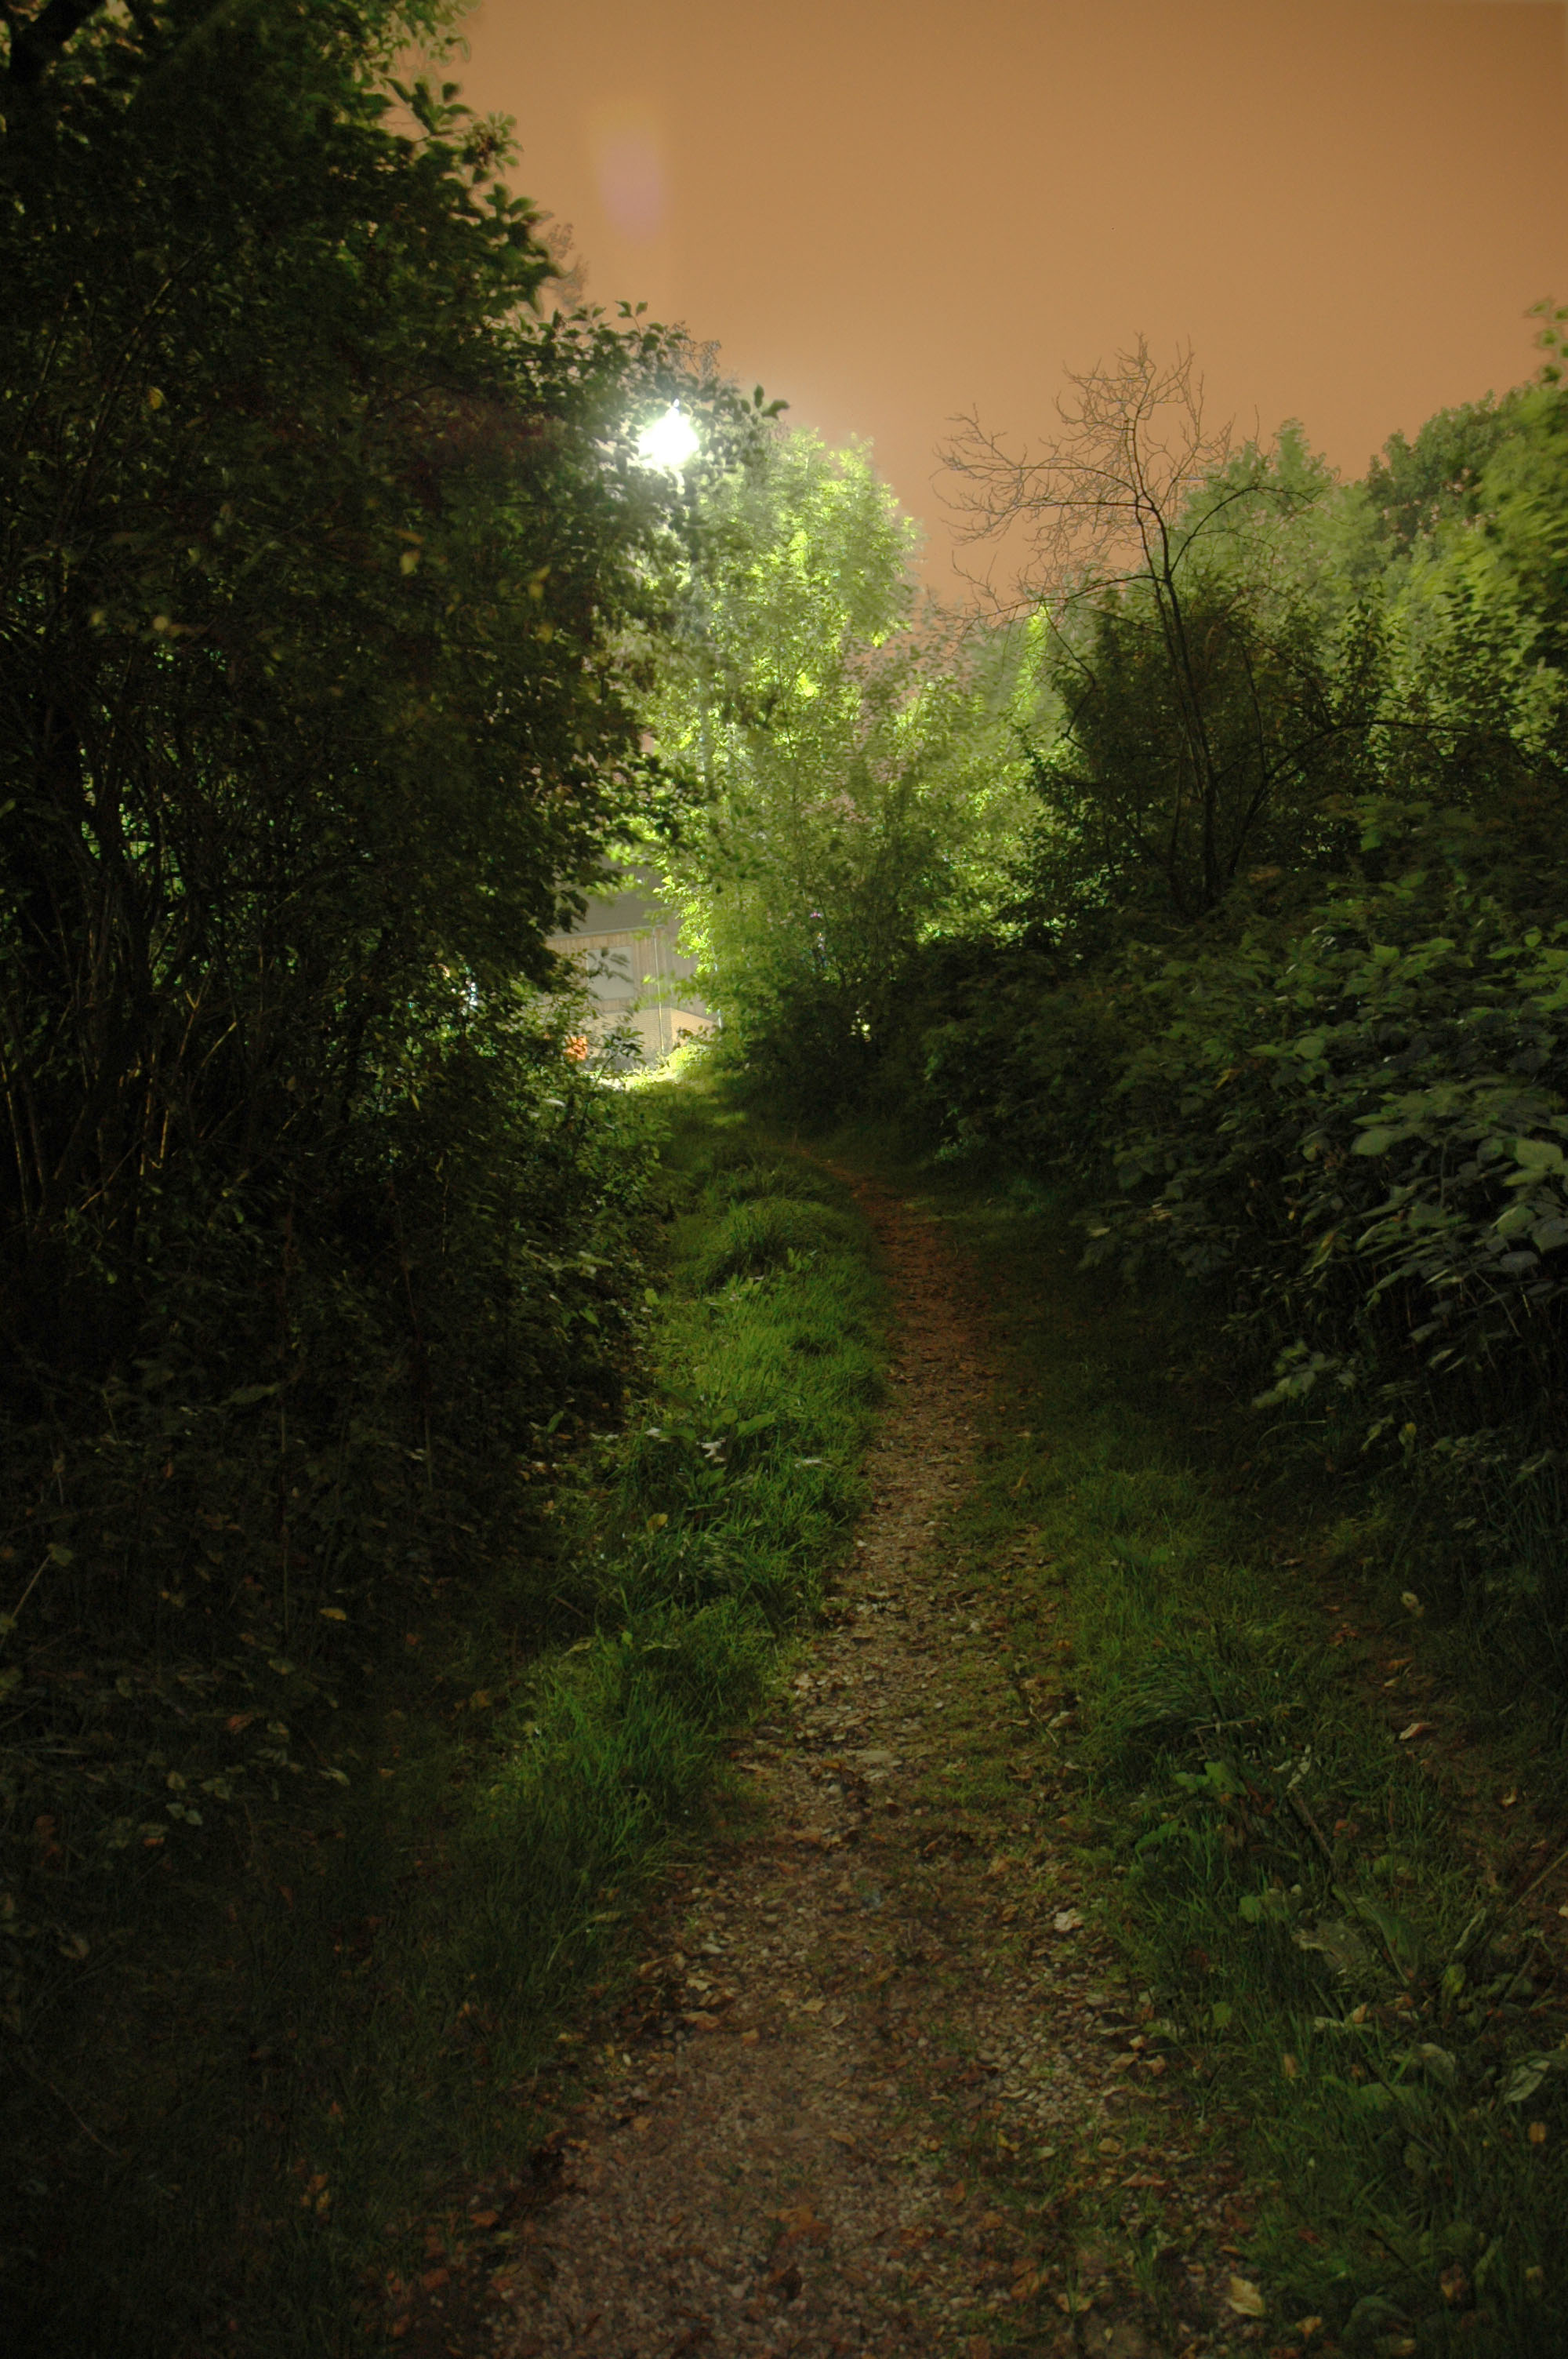 path-at-night-1188084